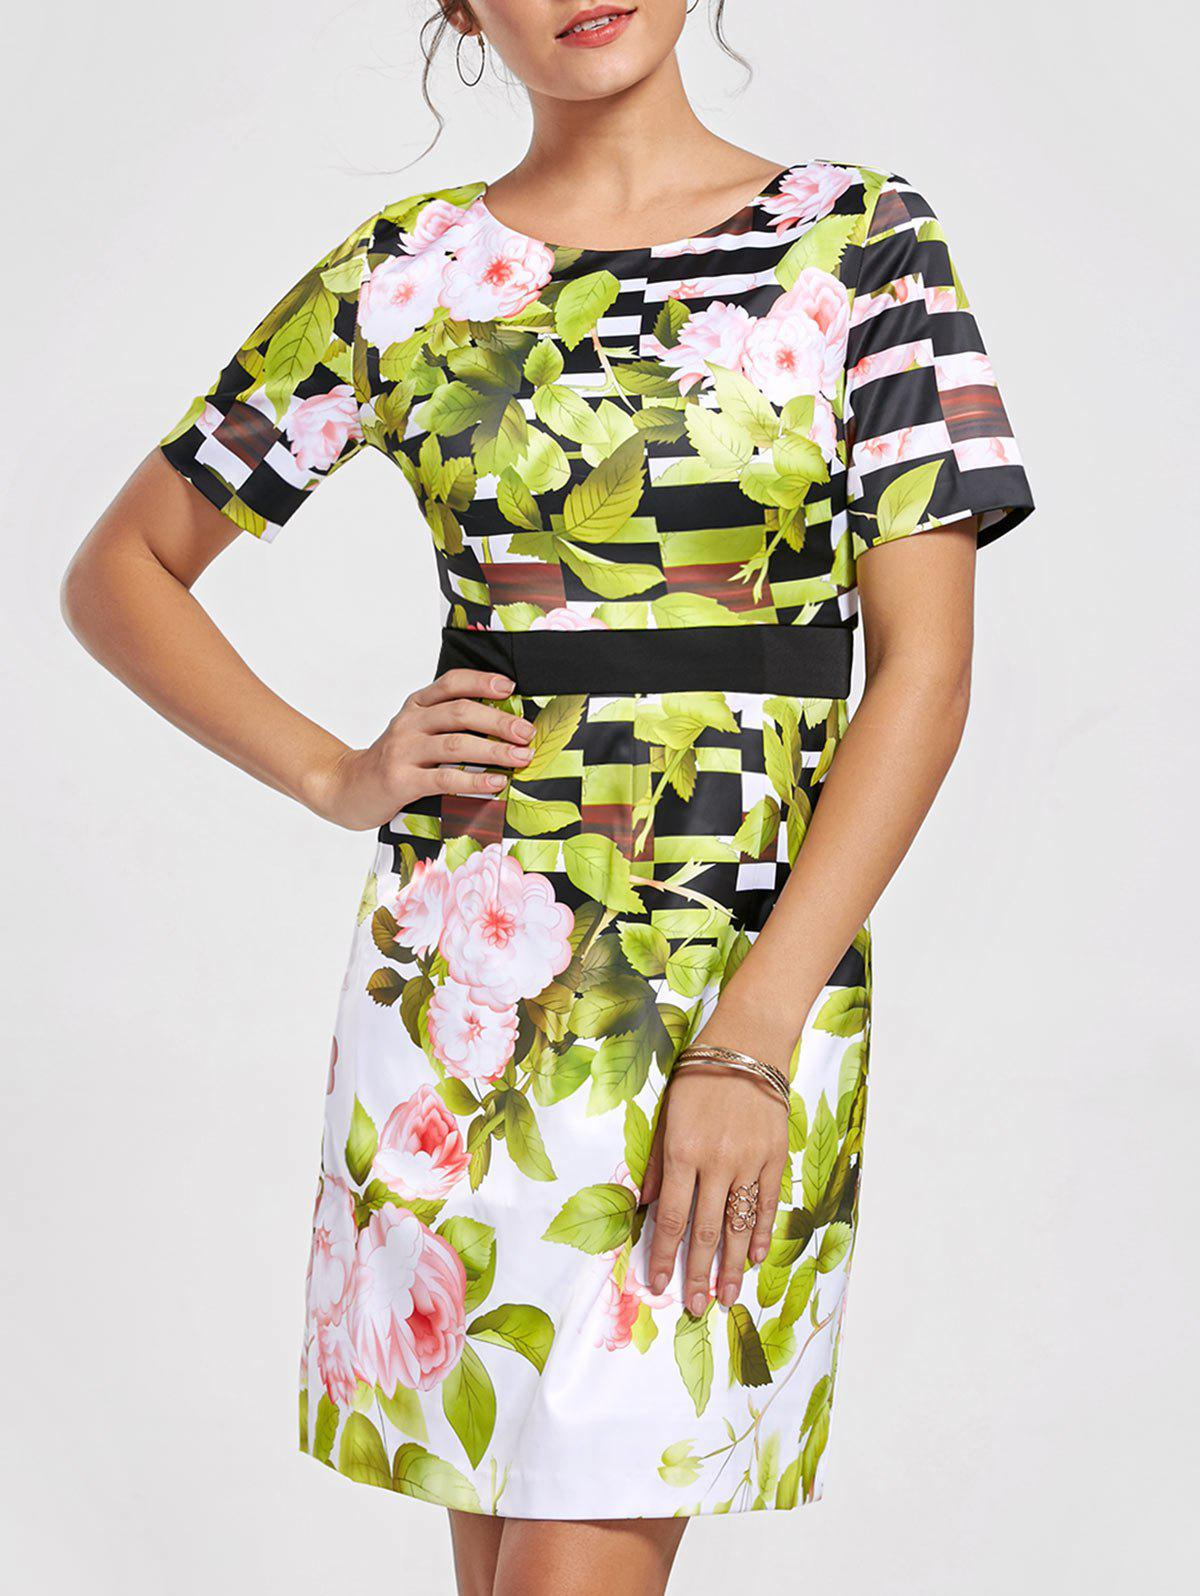 Outfits Vintage Scoop Neck Short Sleeves Floral Print Dress For Women